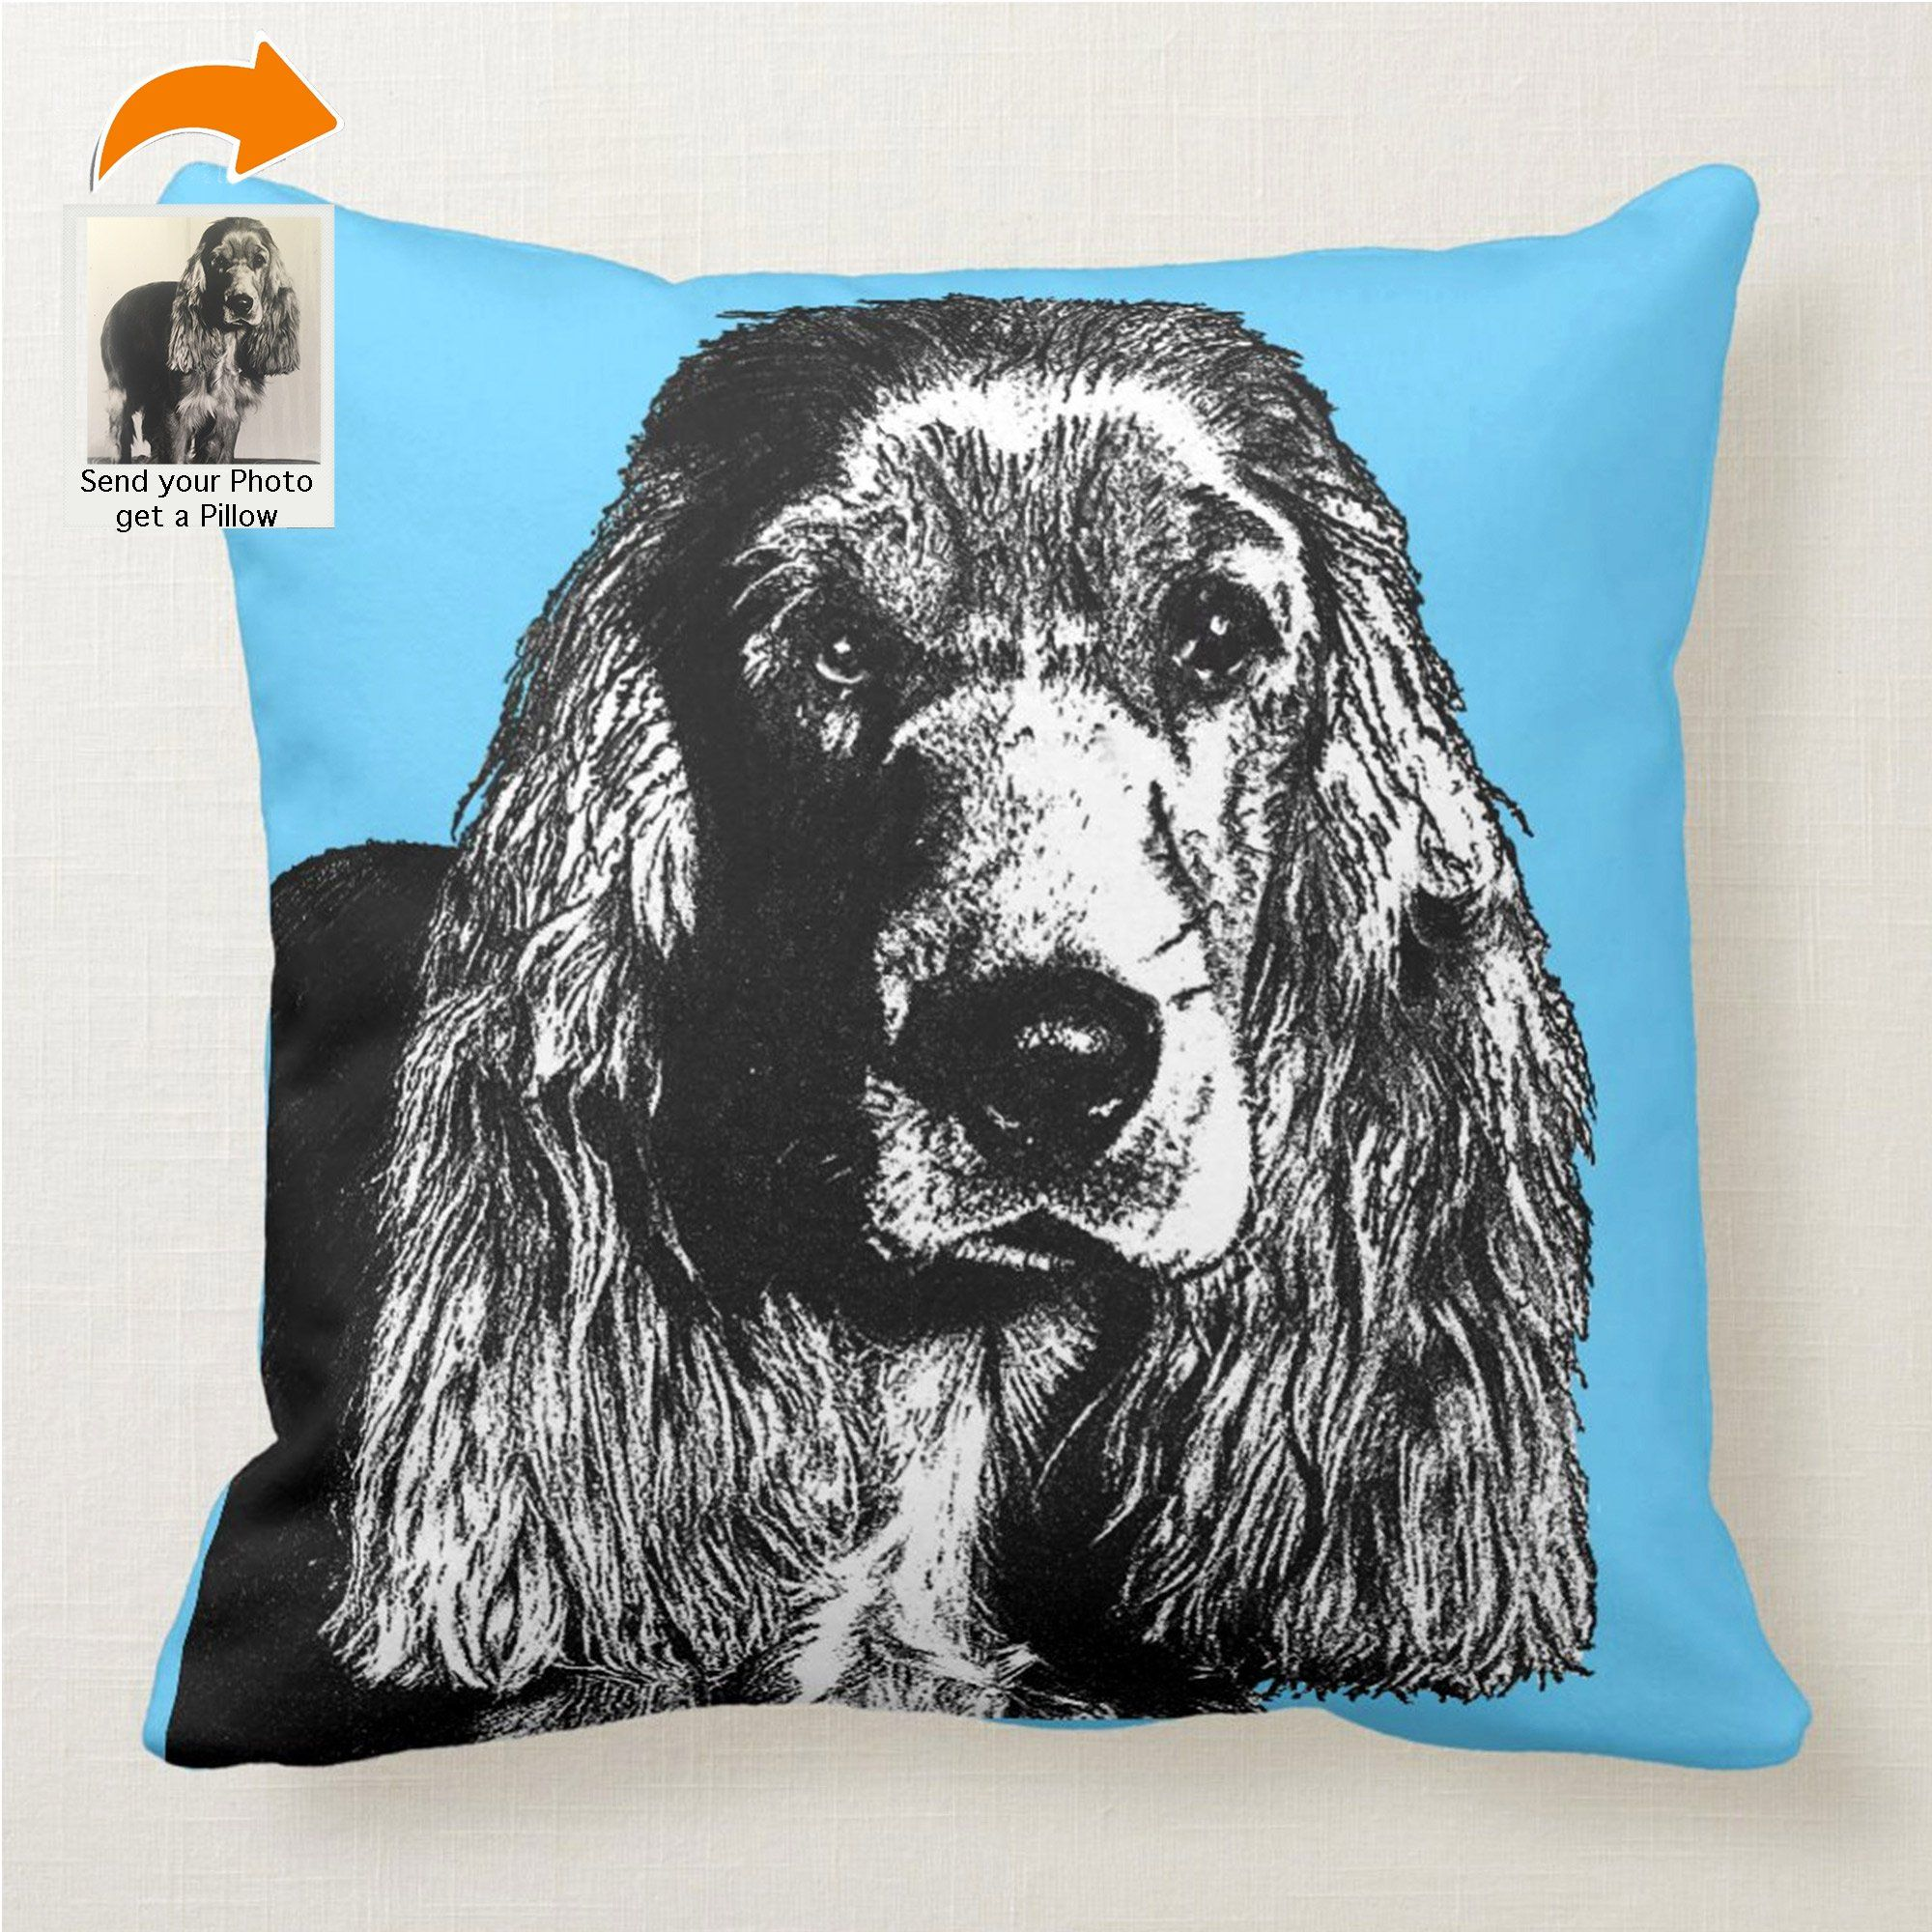 Order Form for Customizable Pet Pillows